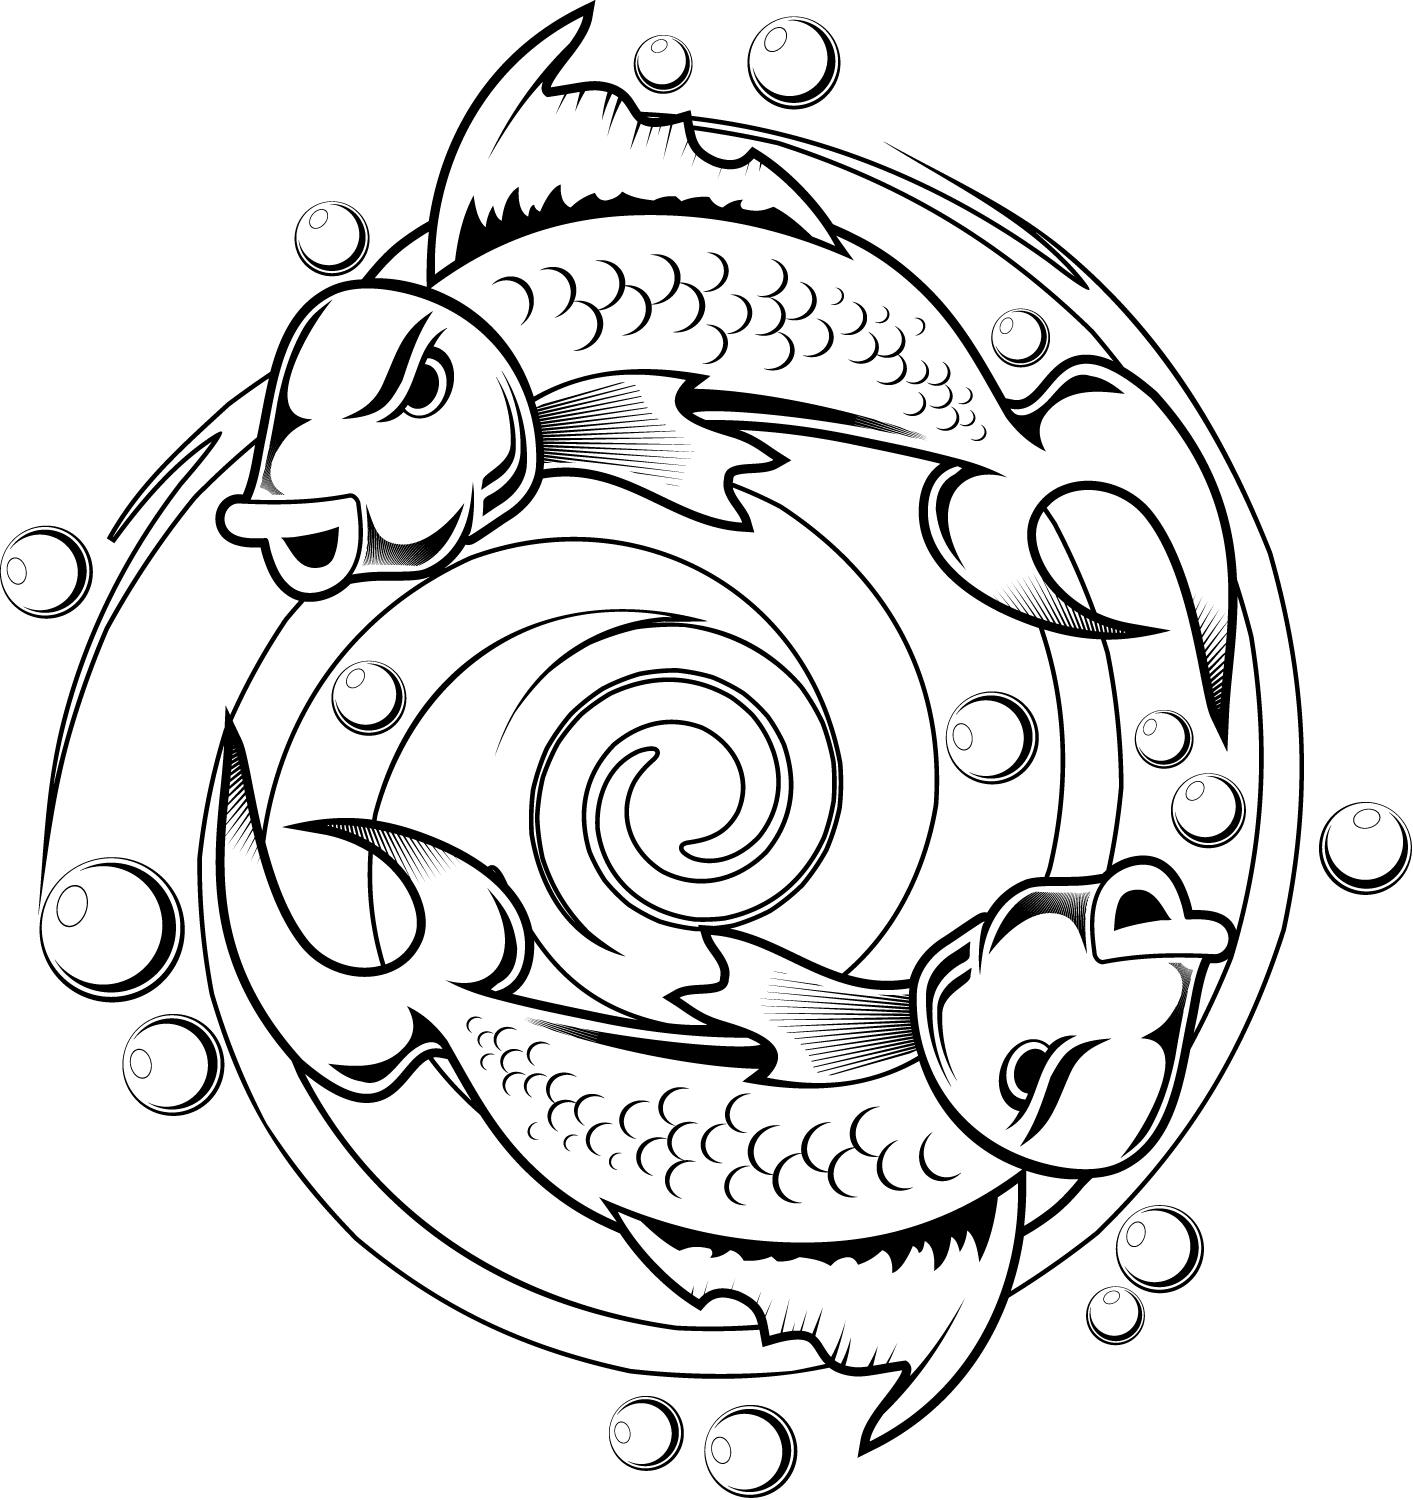 1413x1500 Kids Coloring Pages Of A Koi Fish Tattoo Design